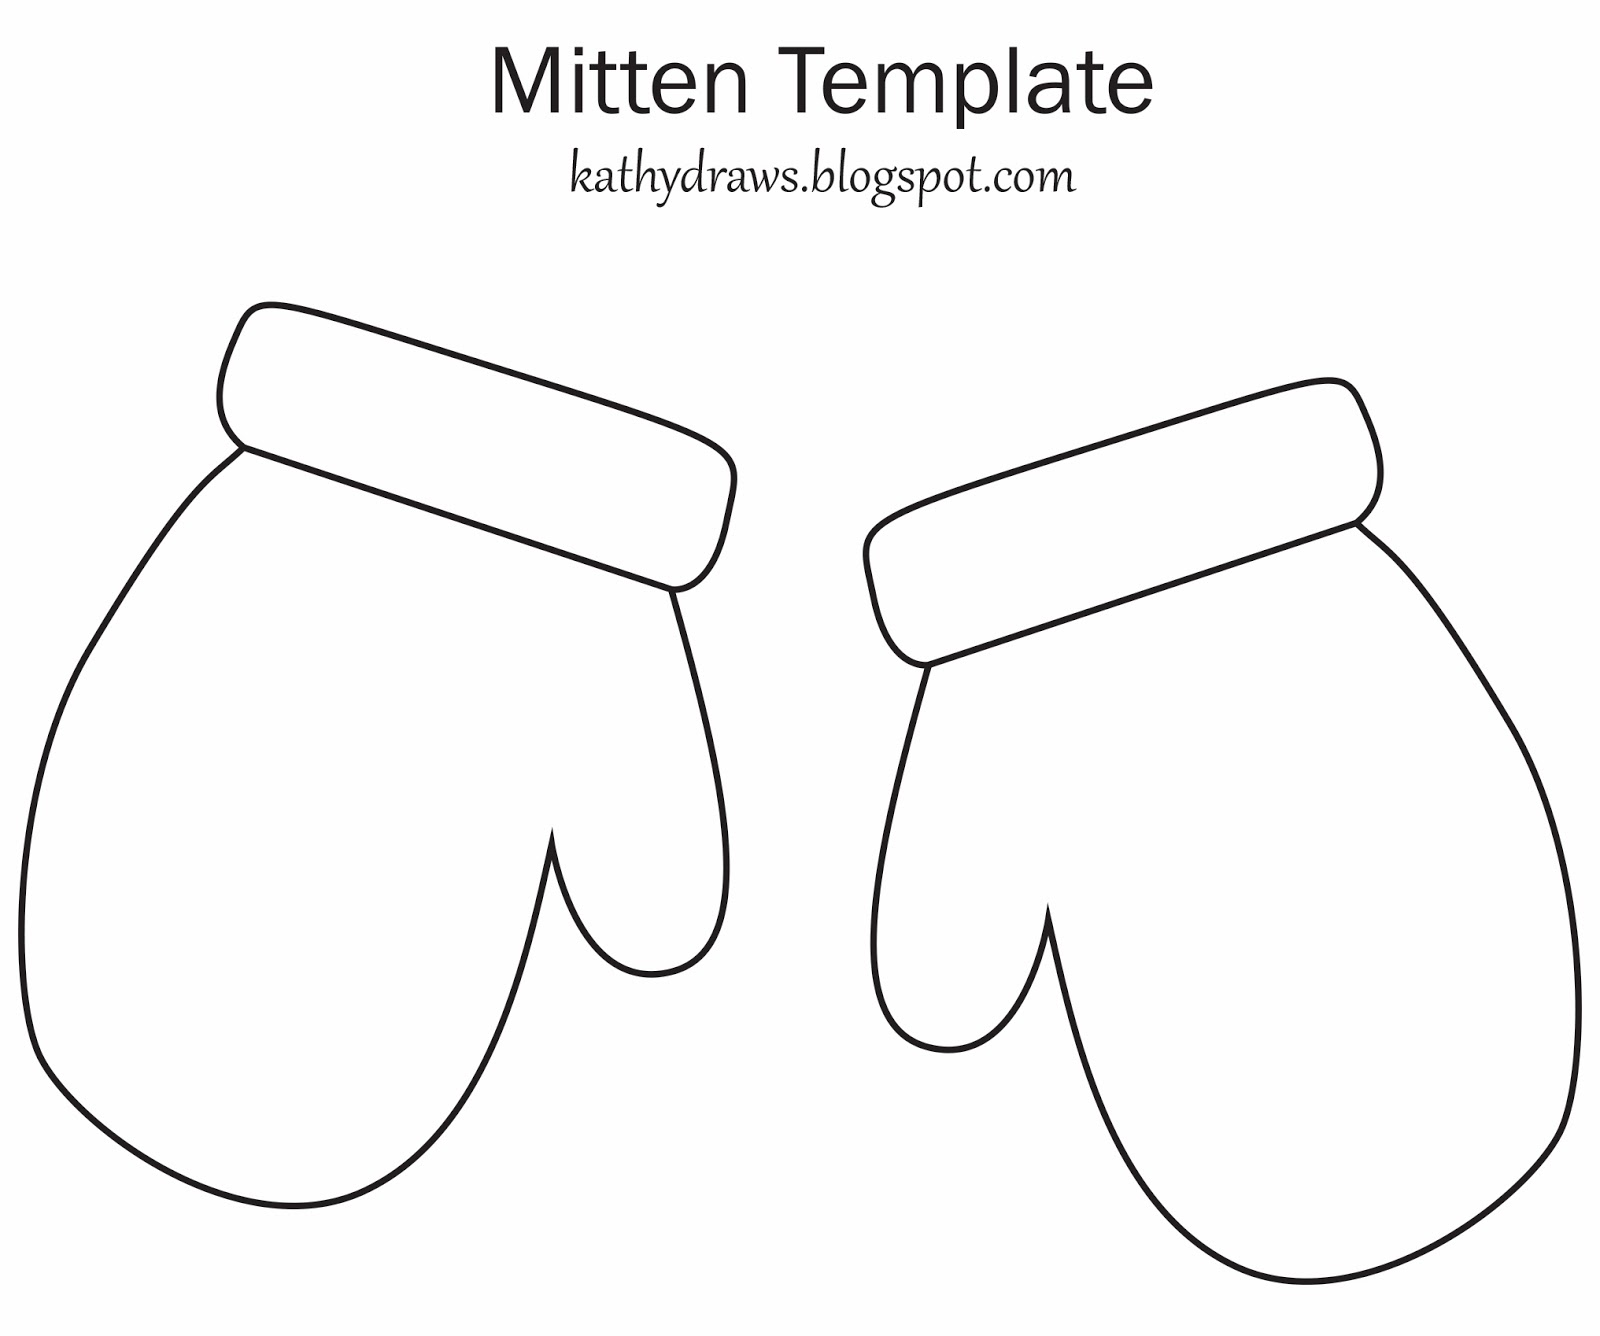 Mitten Template For Writing i 39 ve Made The Mitten Template